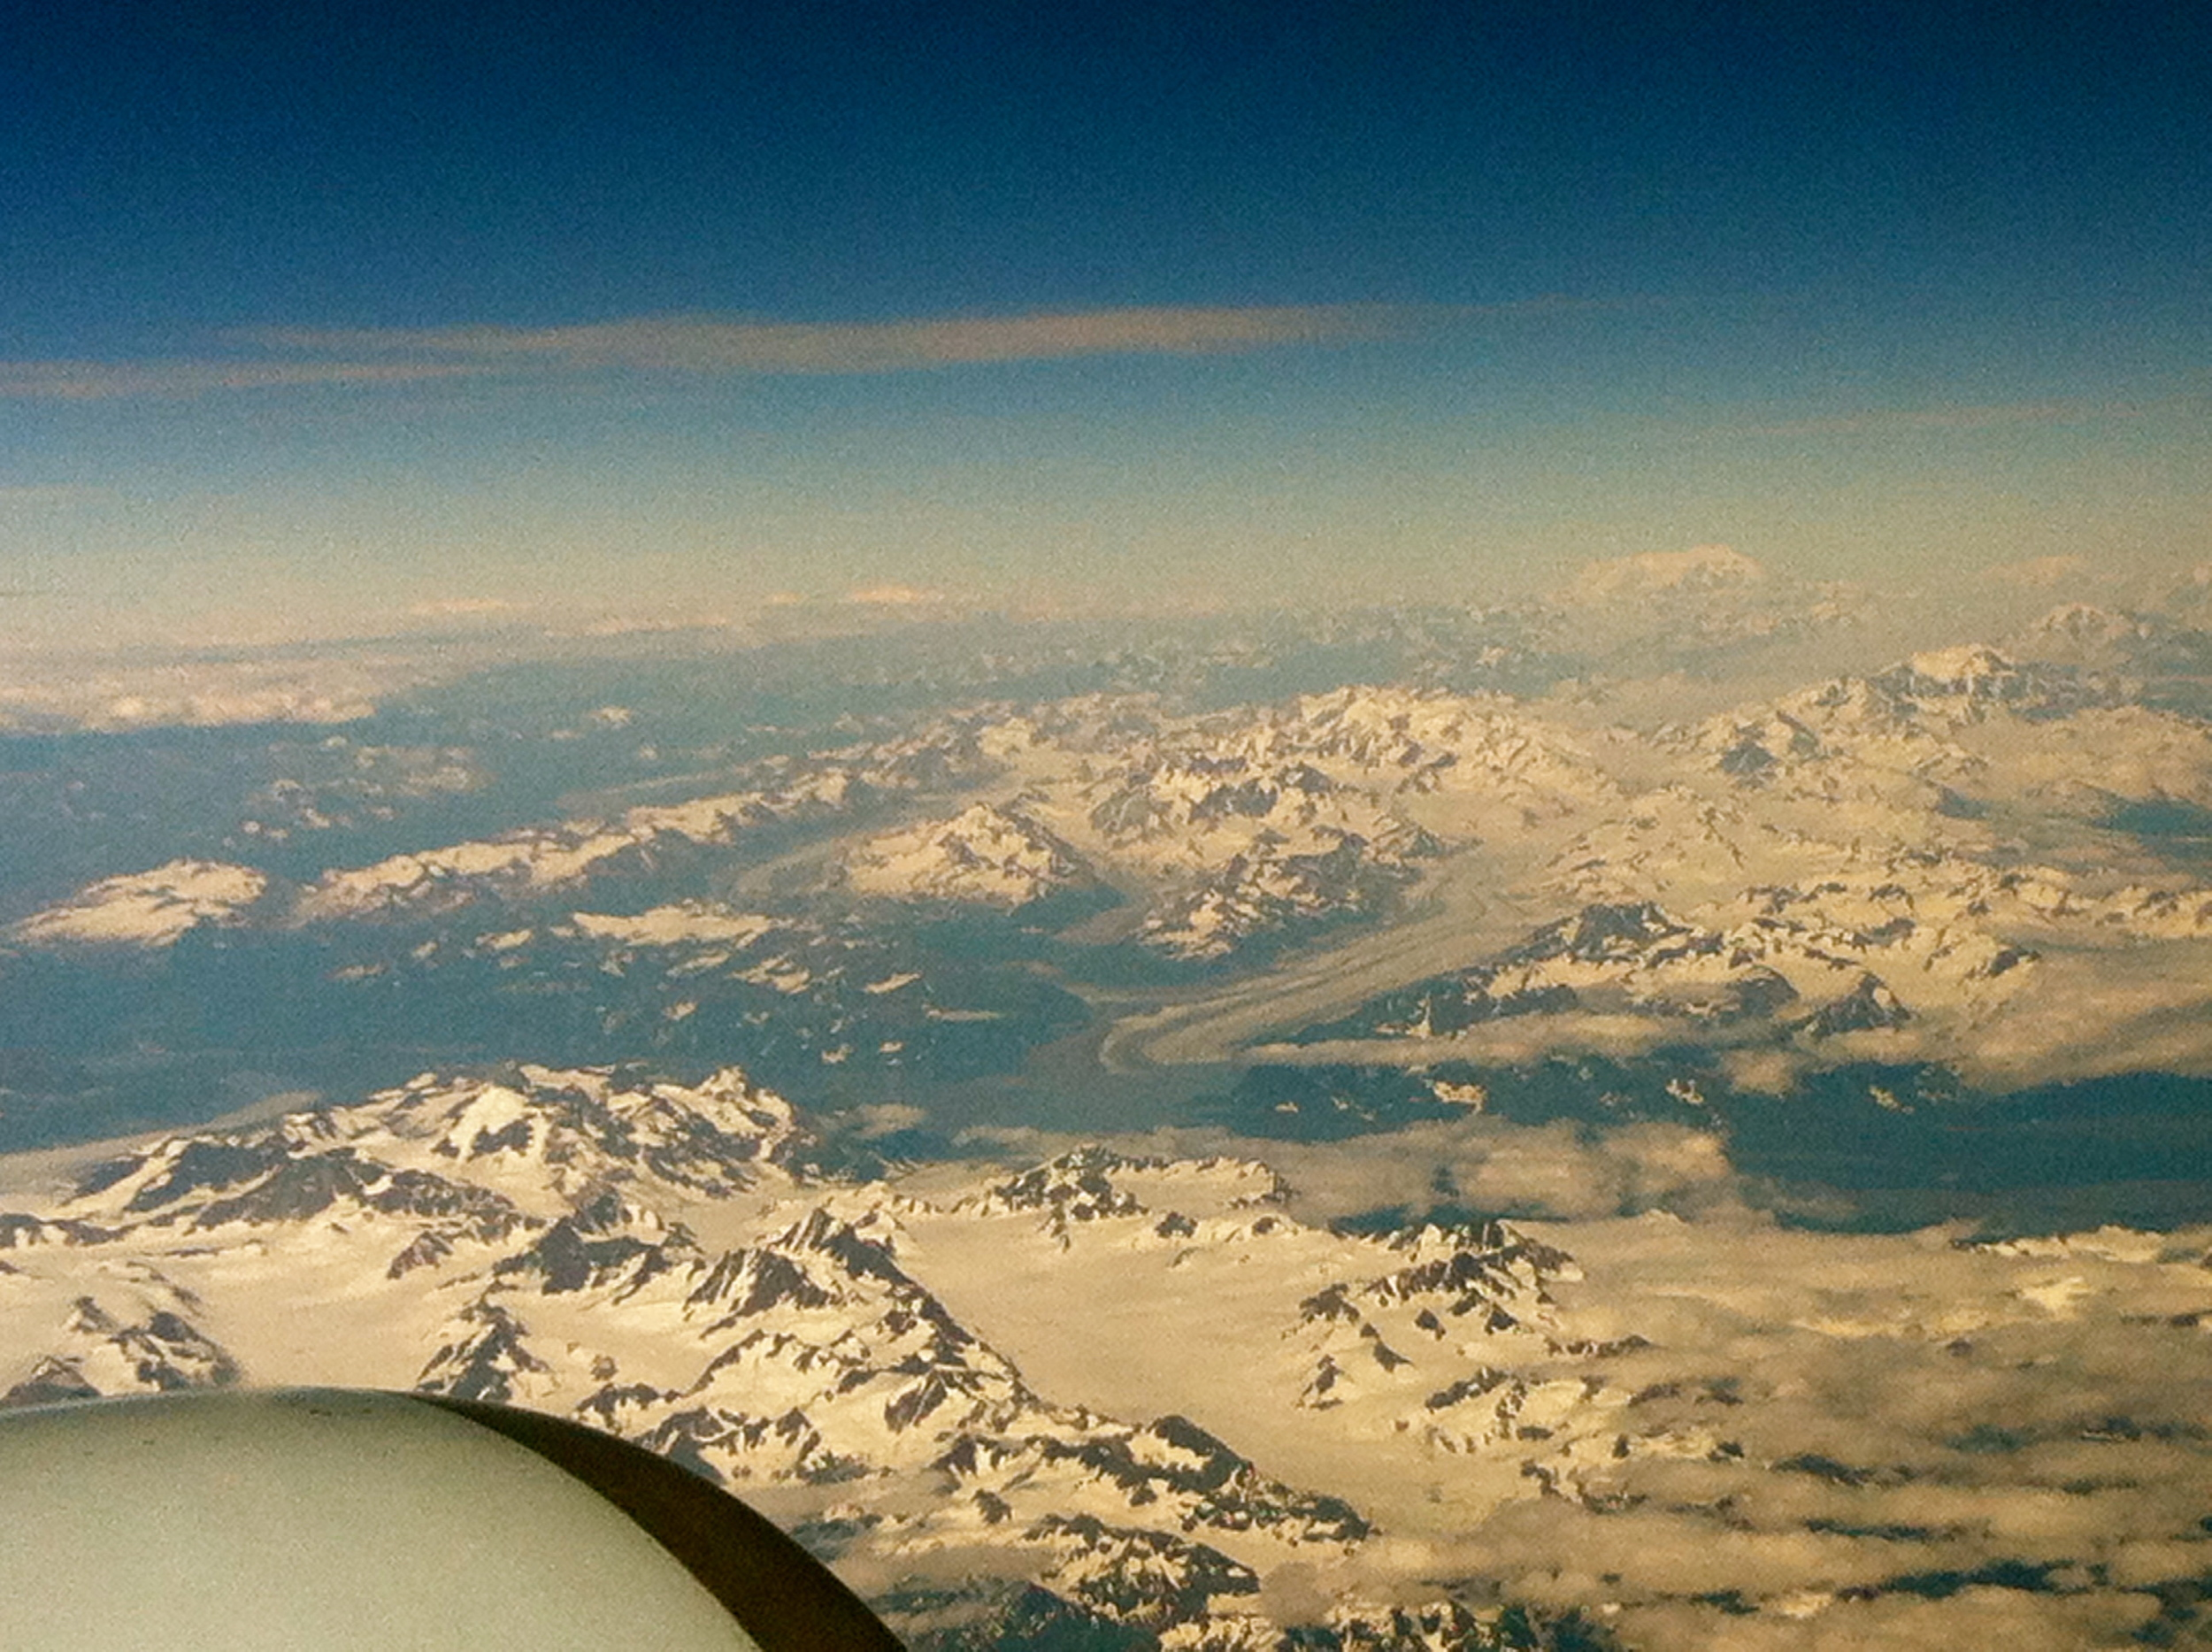 Looks kind of chilly down there! Checking out Alaska above the clouds.